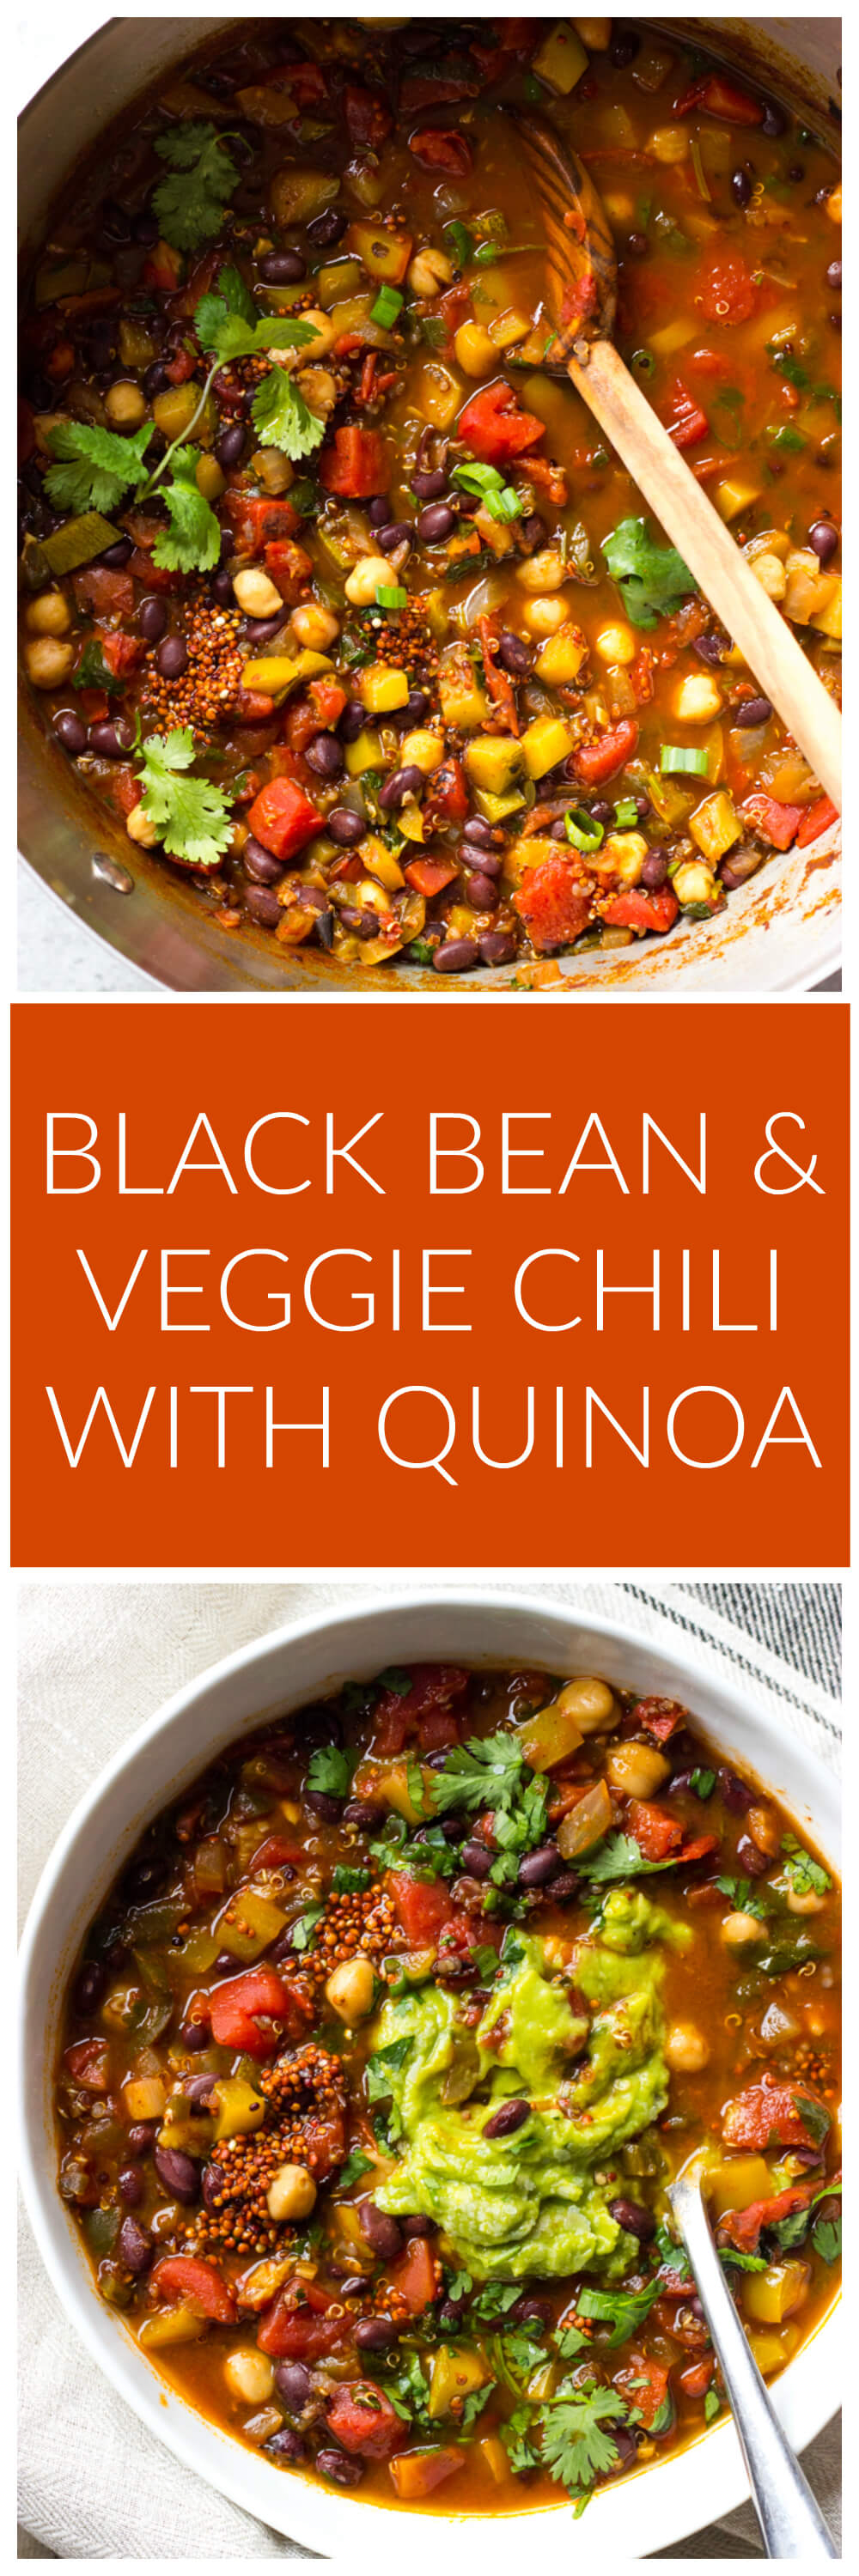 Black Bean and Veggie Chili with Quinoa - protein packed chili with quinoa, beans, and perfect blend of veggies. PLUS the most perfect seasoning! | littlebroken.com @littlebroken